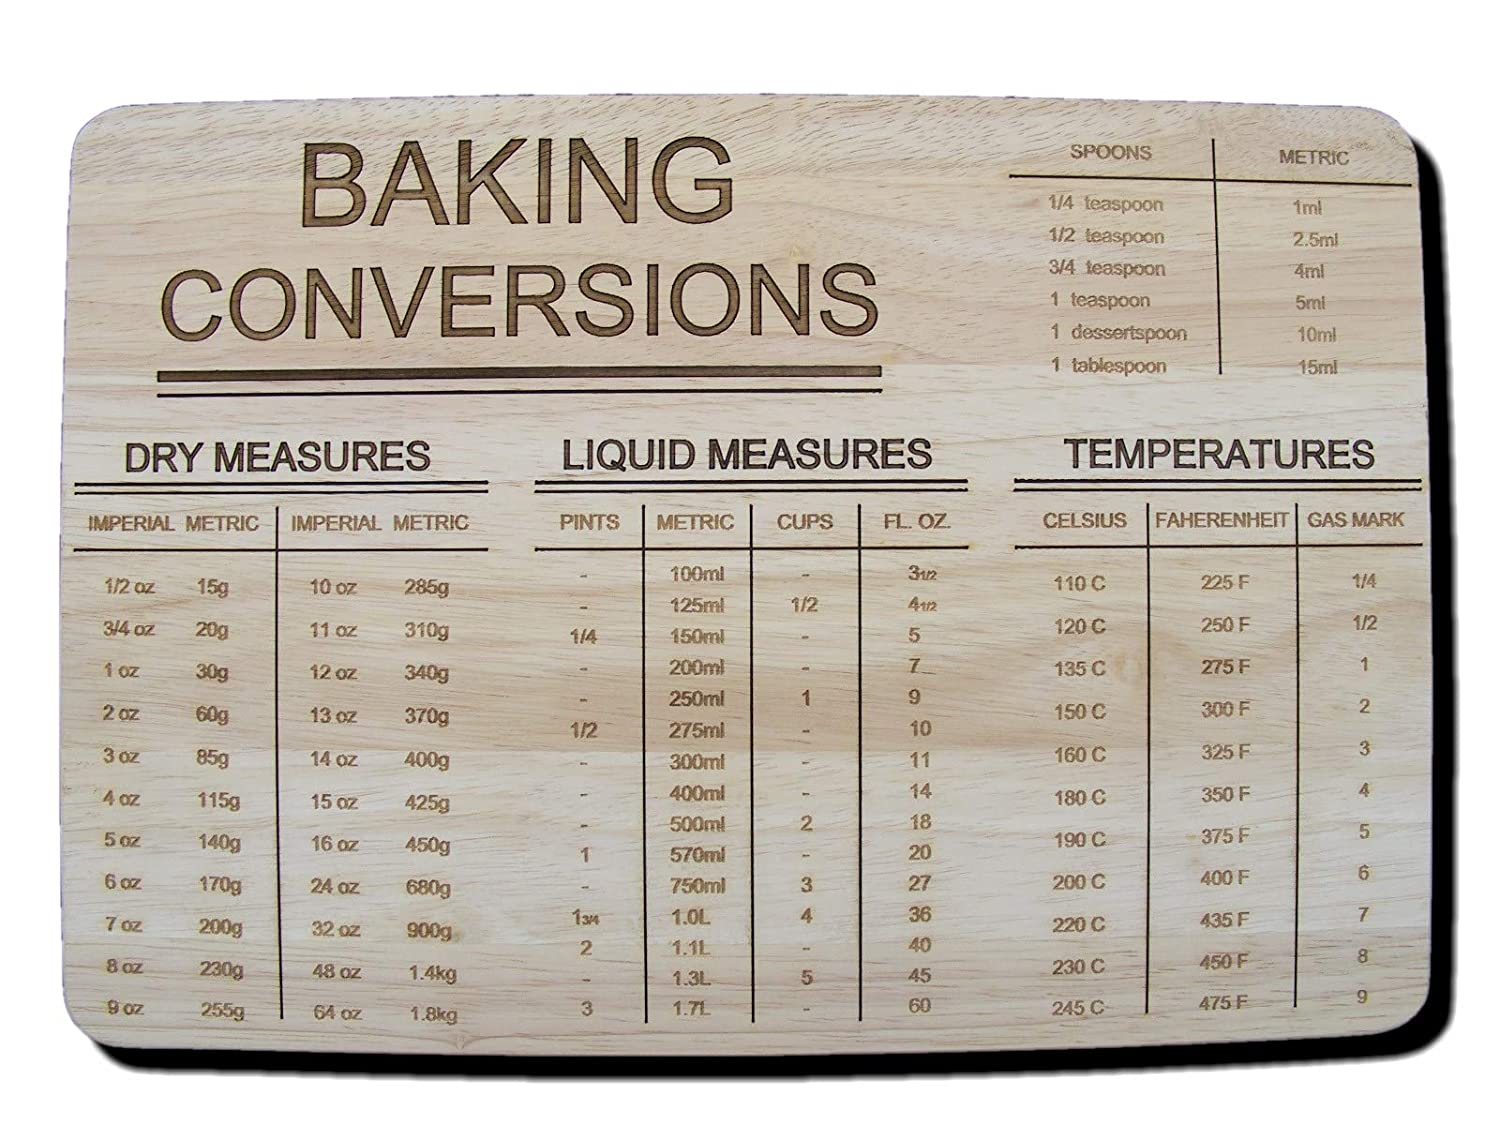 BAKING CONVERSION GIFT IDEA PREMIUM HARDWOOD WOODEN CHOPPING CUTTING CHEESE BOARD PLACE MAT DINNER ENGRAVED WOODEN MEASURES WOOD KITCHEN CONVERSIONS COOKING BAKING BIRTHDAY PRESENT WEDDING LASER ENGRAVED by FASTCRAFT UK (Premium Hardwood 35x24x1.5 cm)